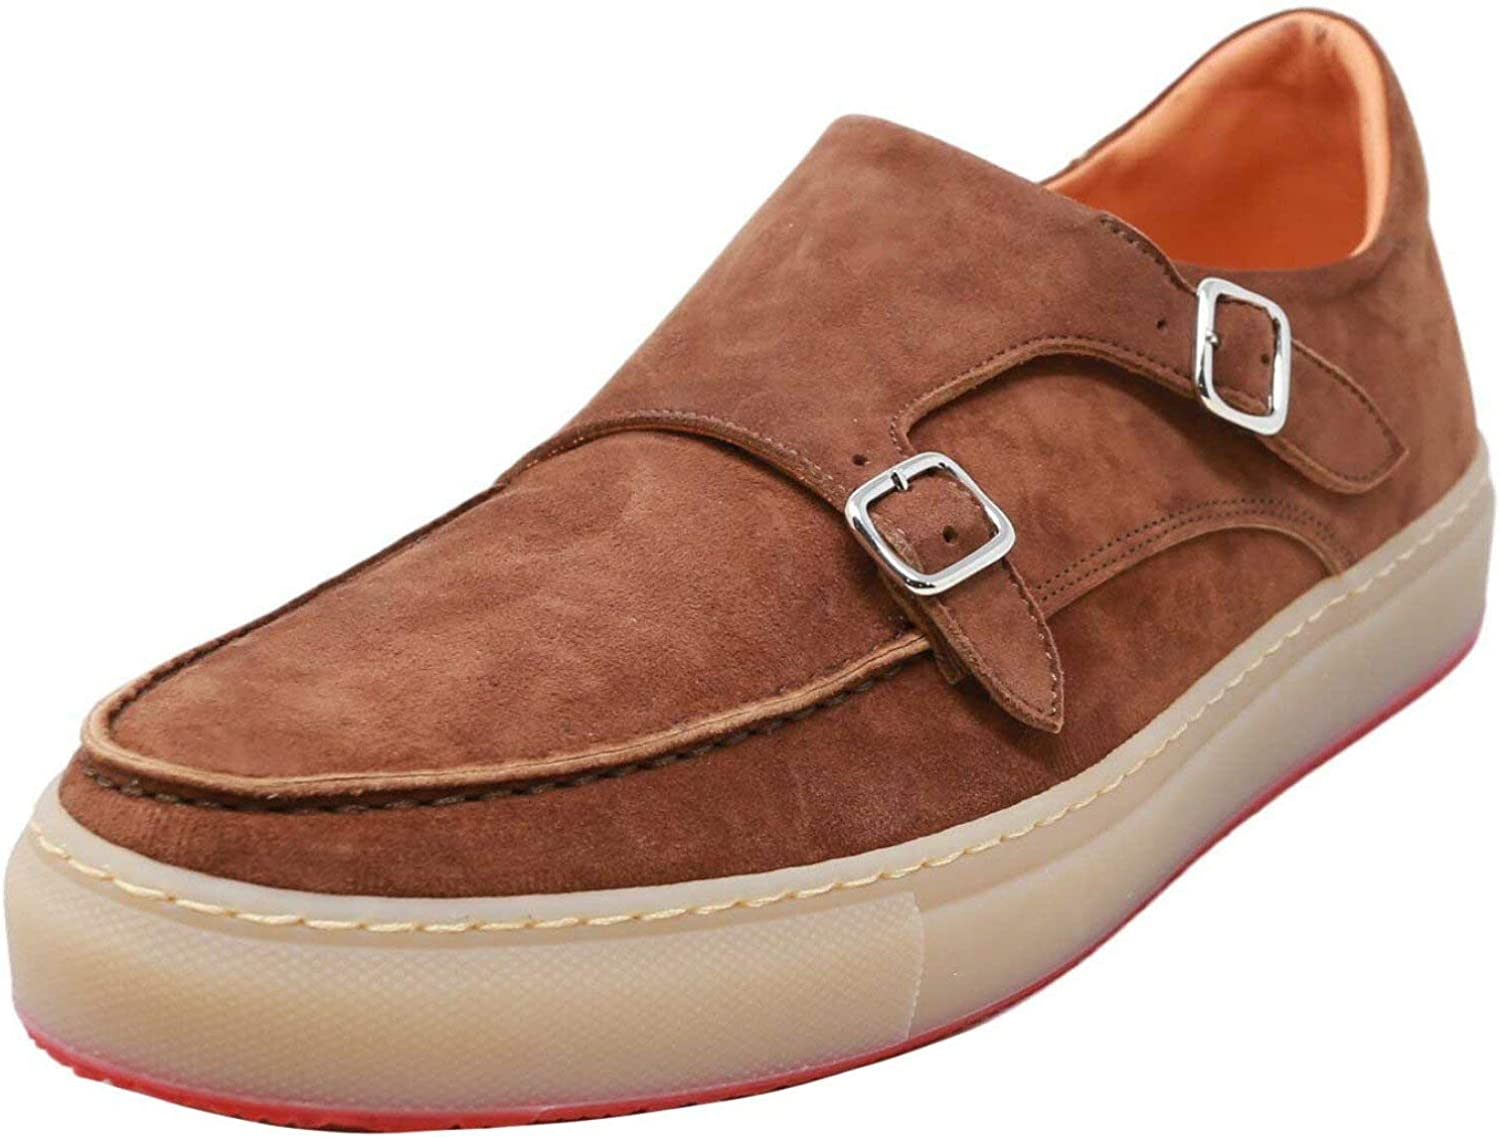 Andrea Ventura Firenze Men's Monks Cashmere Savage Rubber Ankle-High Leather Loafers & Slip-On - 9.5 M